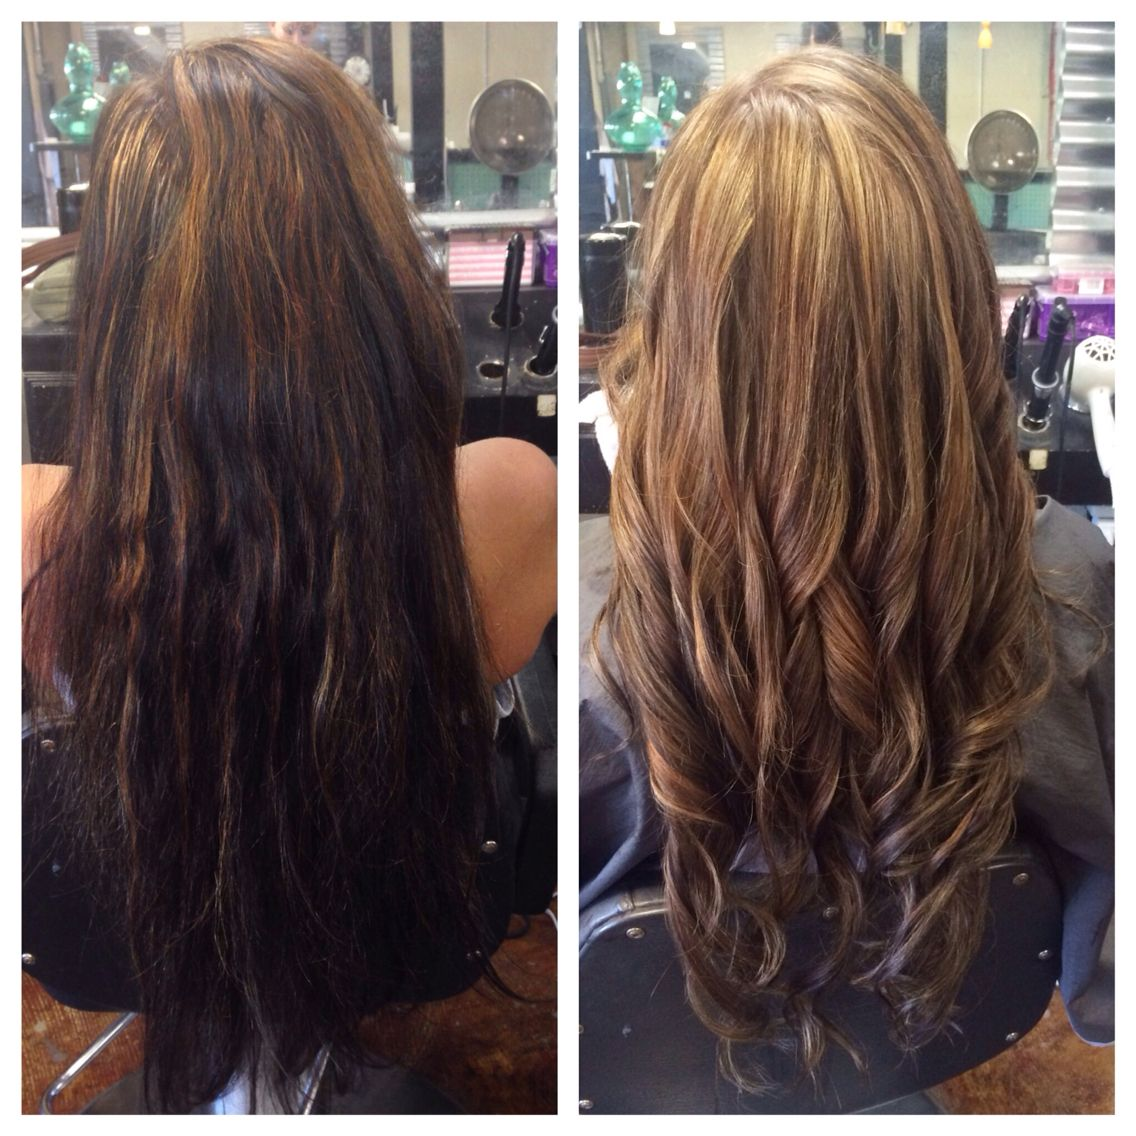 Before And After Highlights With Olaplex Madison Fuller Hair Co